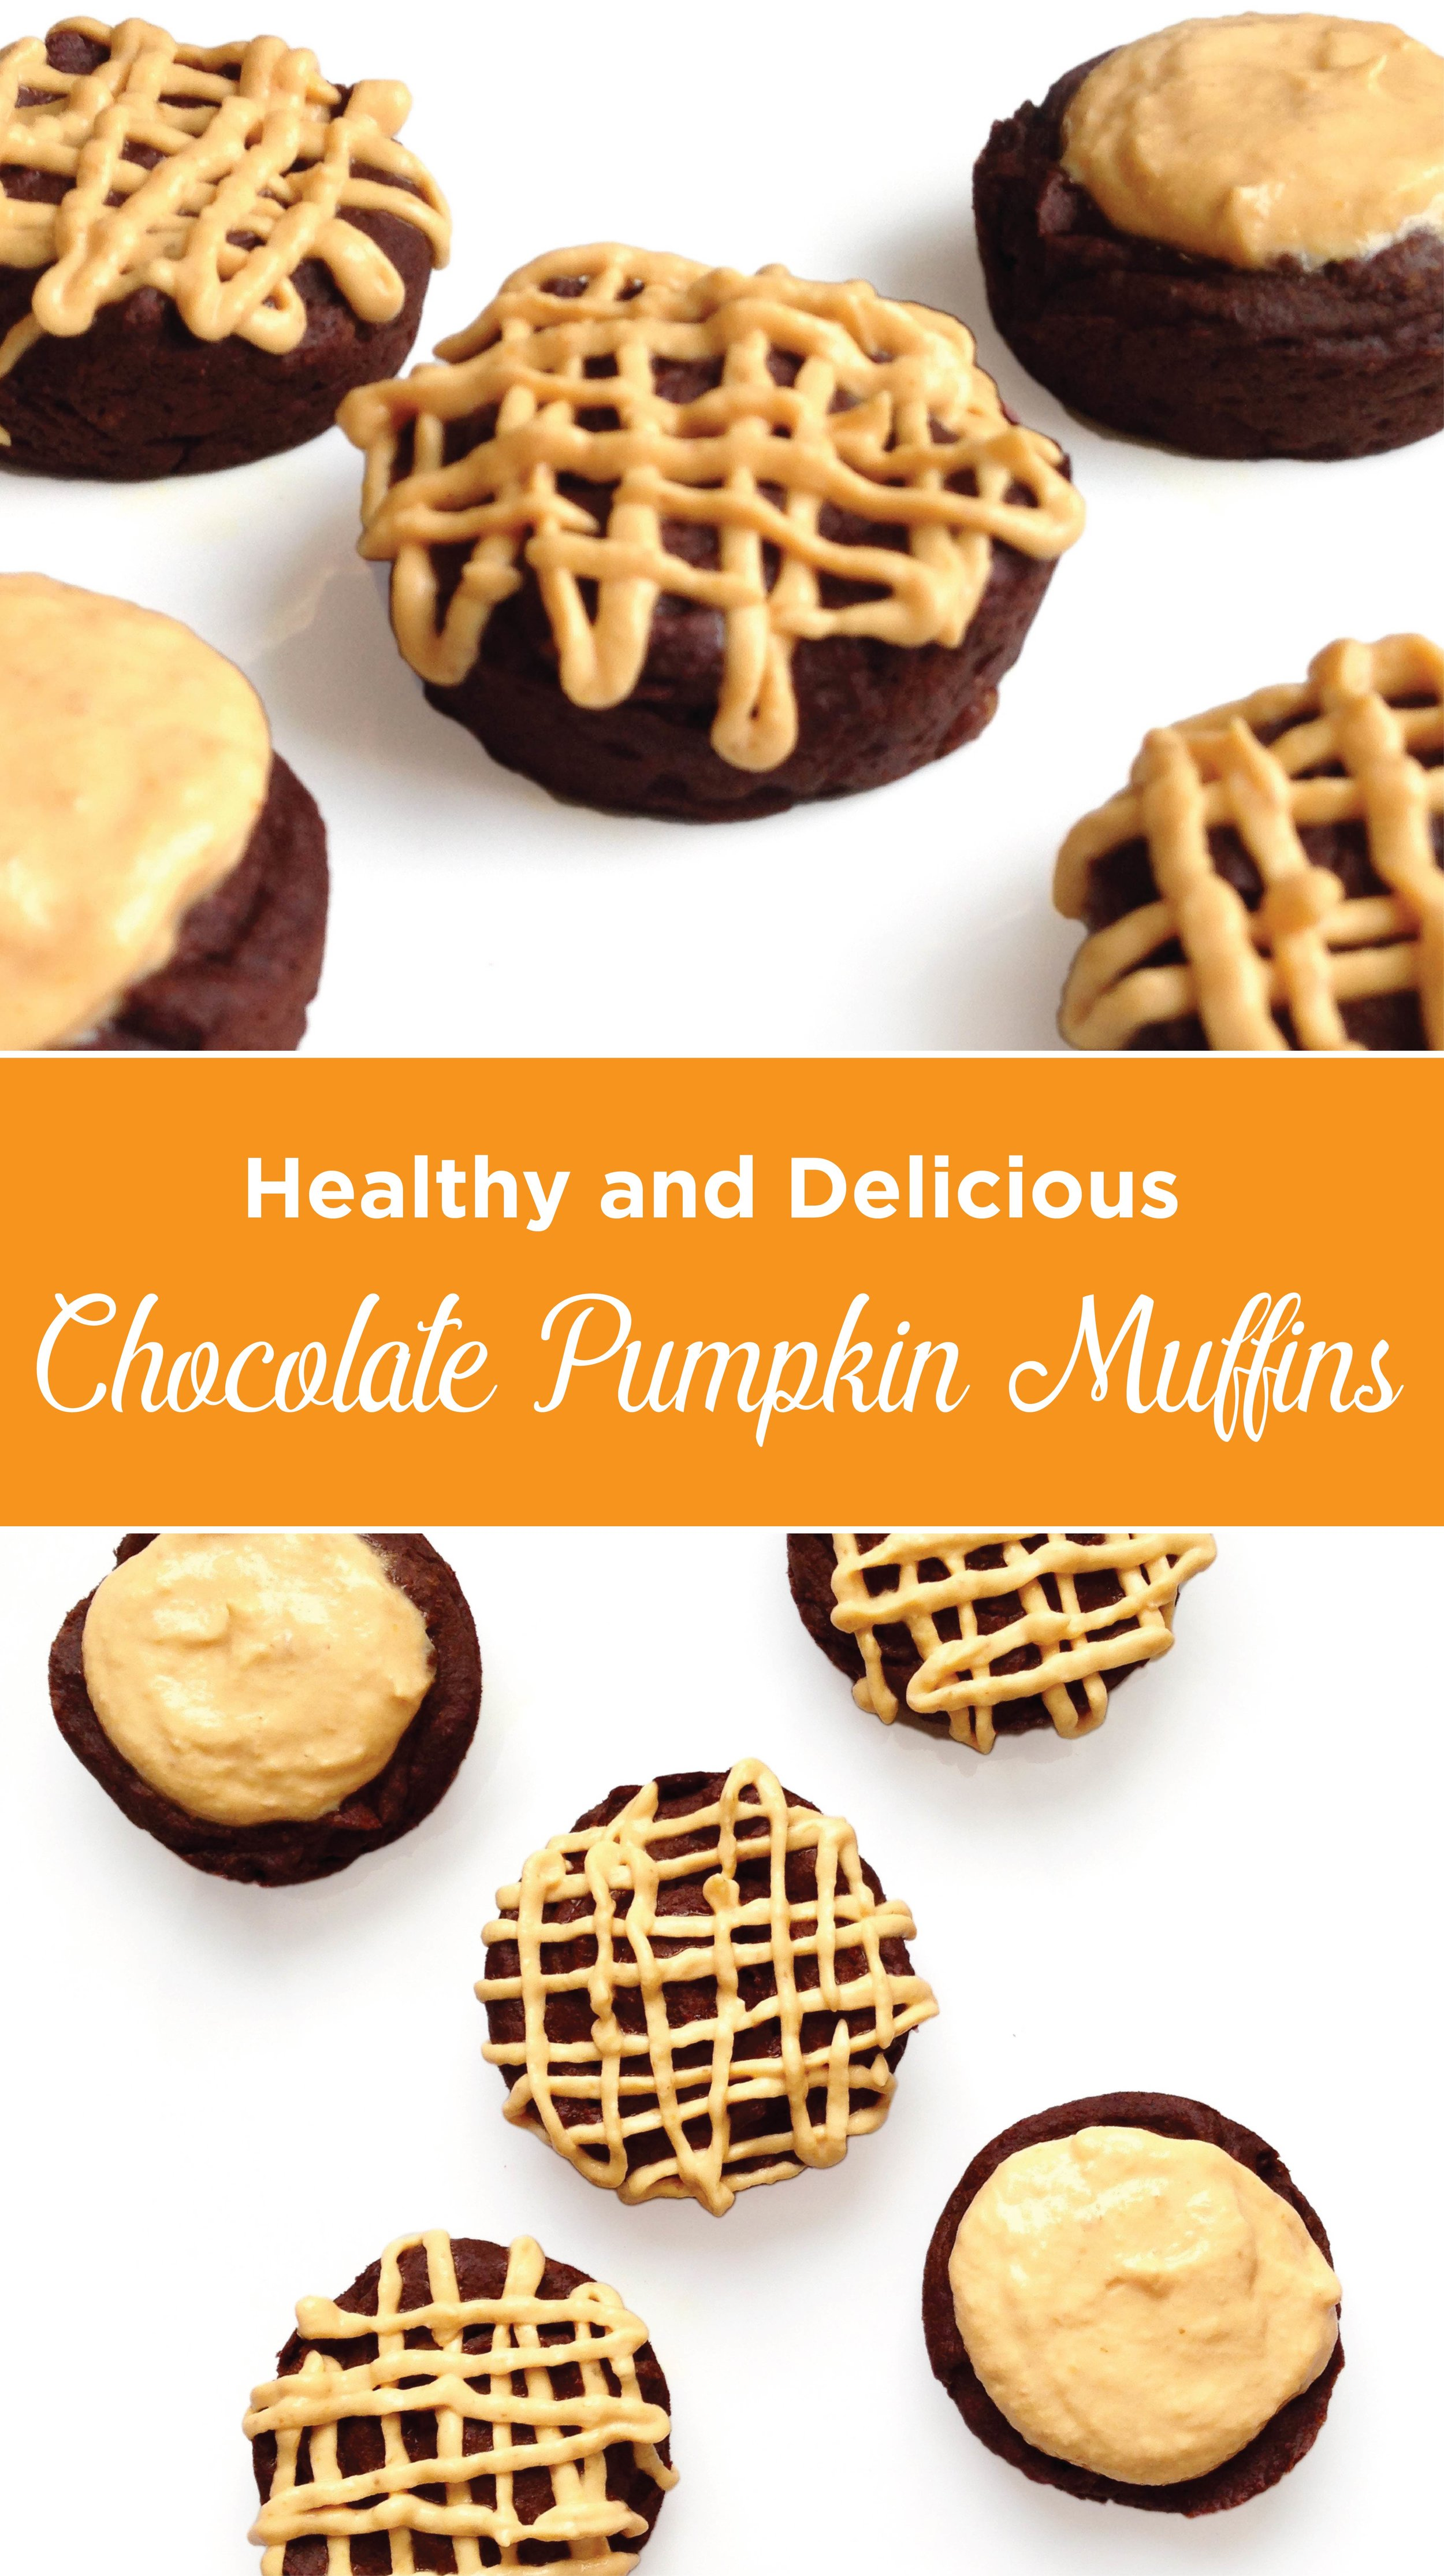 Healthy and Delicious, Chocolate Pumpkin Muffins. Moist and delicious with no sugar, no flour, no oil. Sure to satisfy your sweet tooth without adding to your waistline.